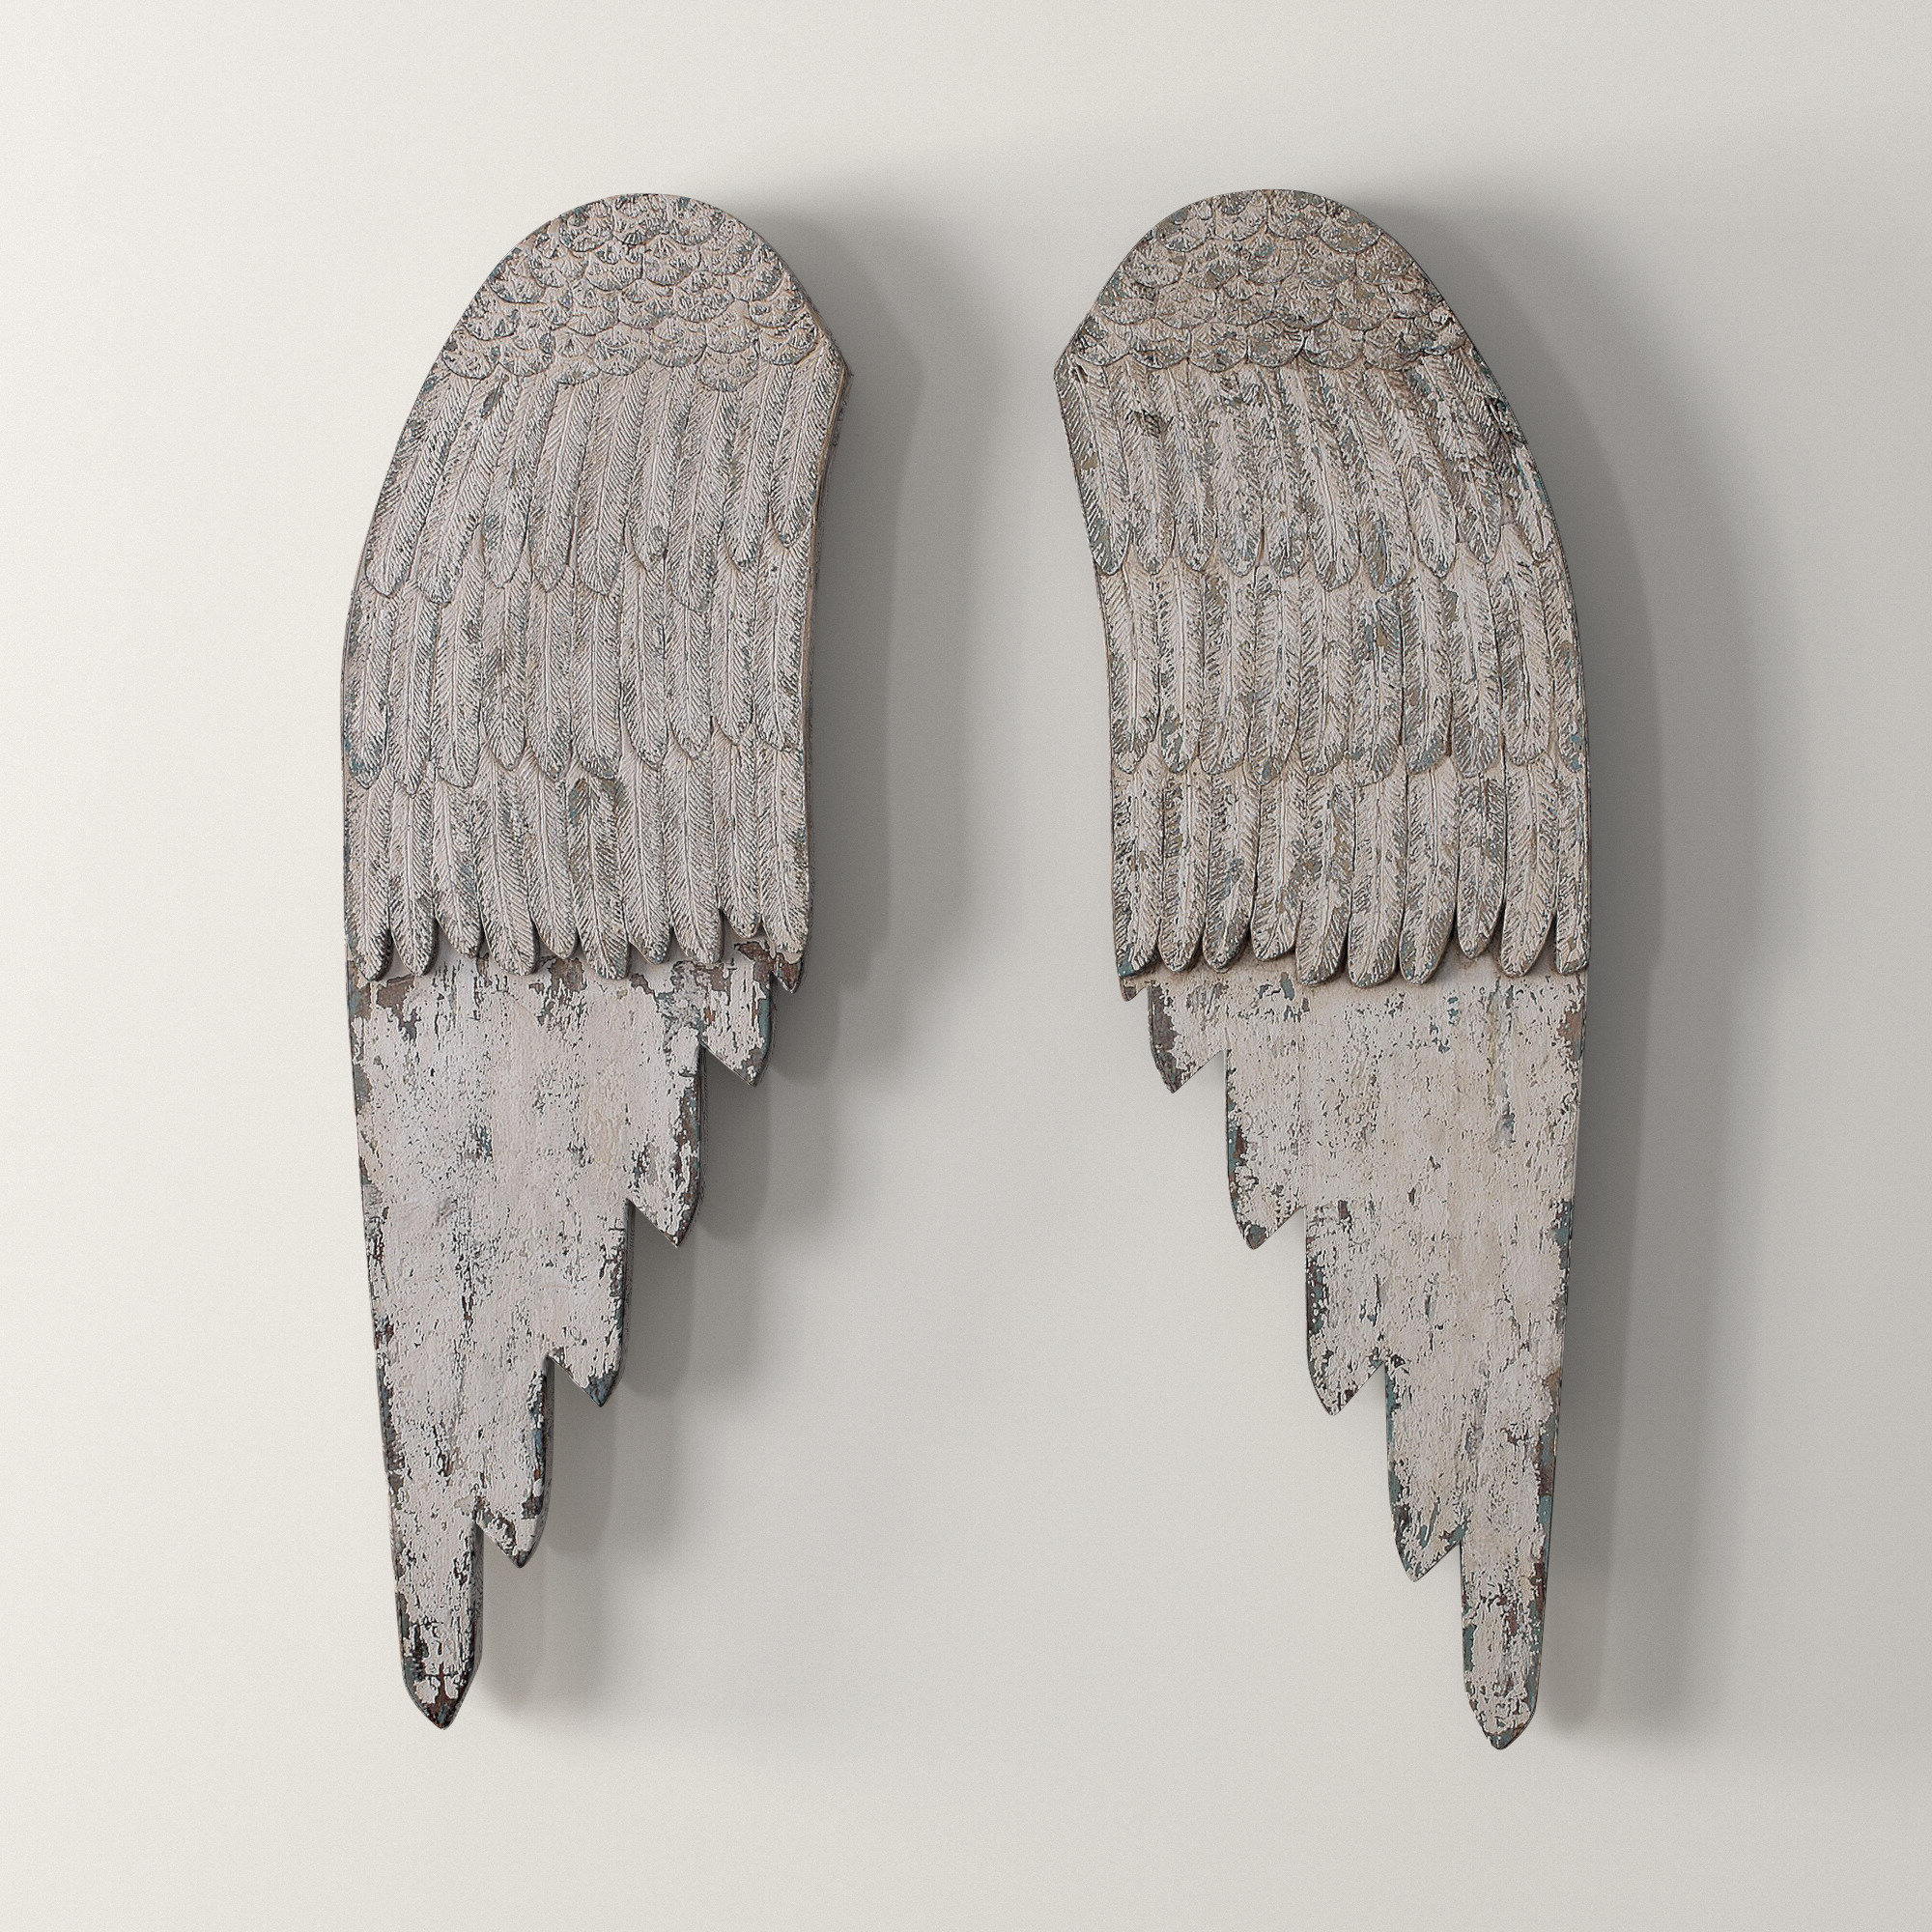 Most Recently Released Wing Wall Décor By One Allium Way With Regard To Angel Wing Wall Décor (View 17 of 20)